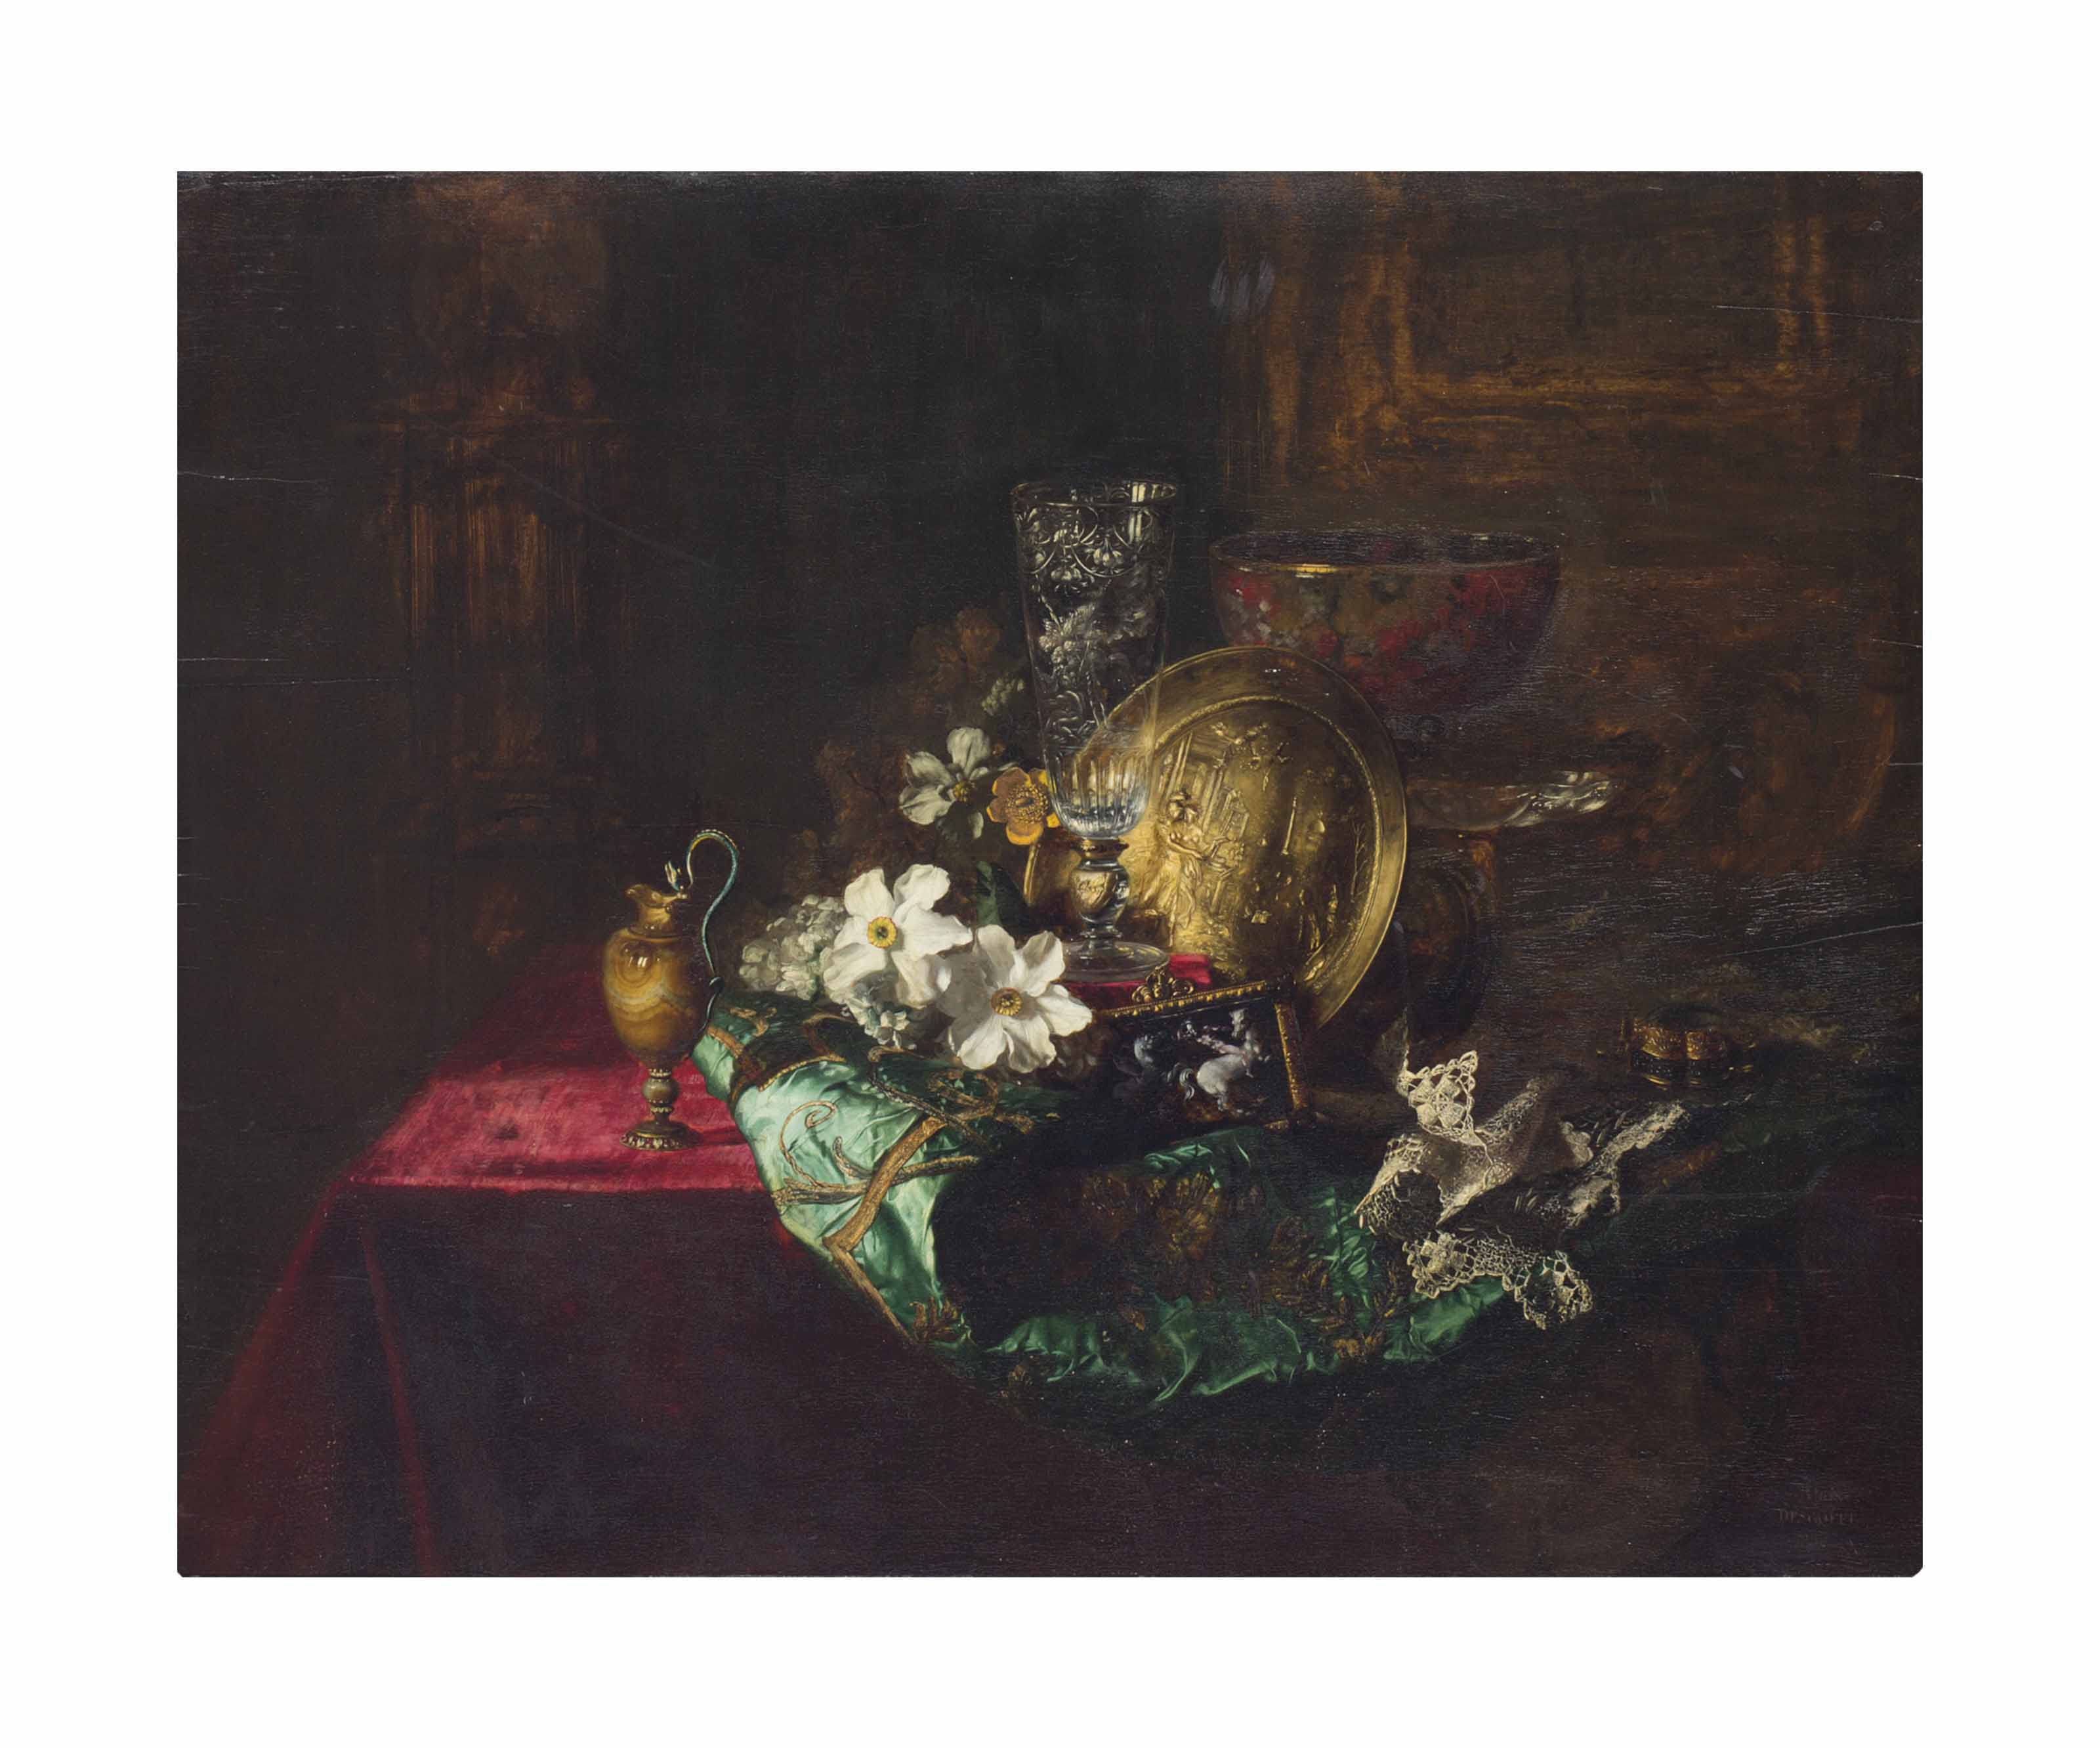 Flowers, a Crystal Goblet, a Gold Charger, an Alabaster Goblet and an Enamelled Plaque on a green Satin Robe on a Draped Table